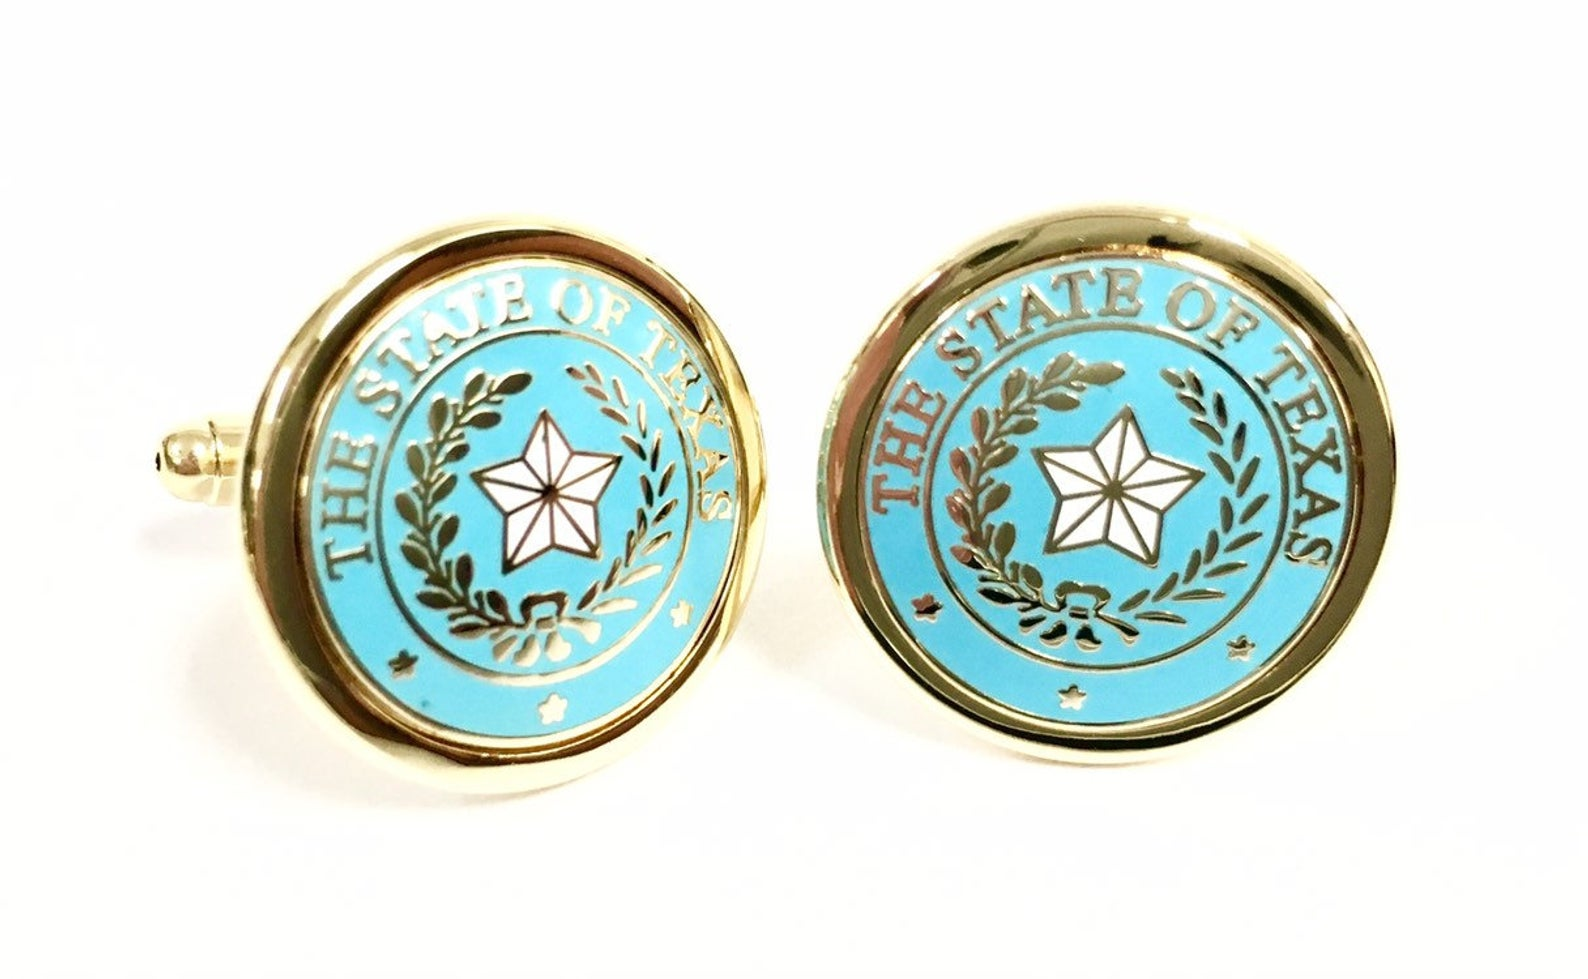 Cufflinks with the Texas State Seal - Light Blue & Gold